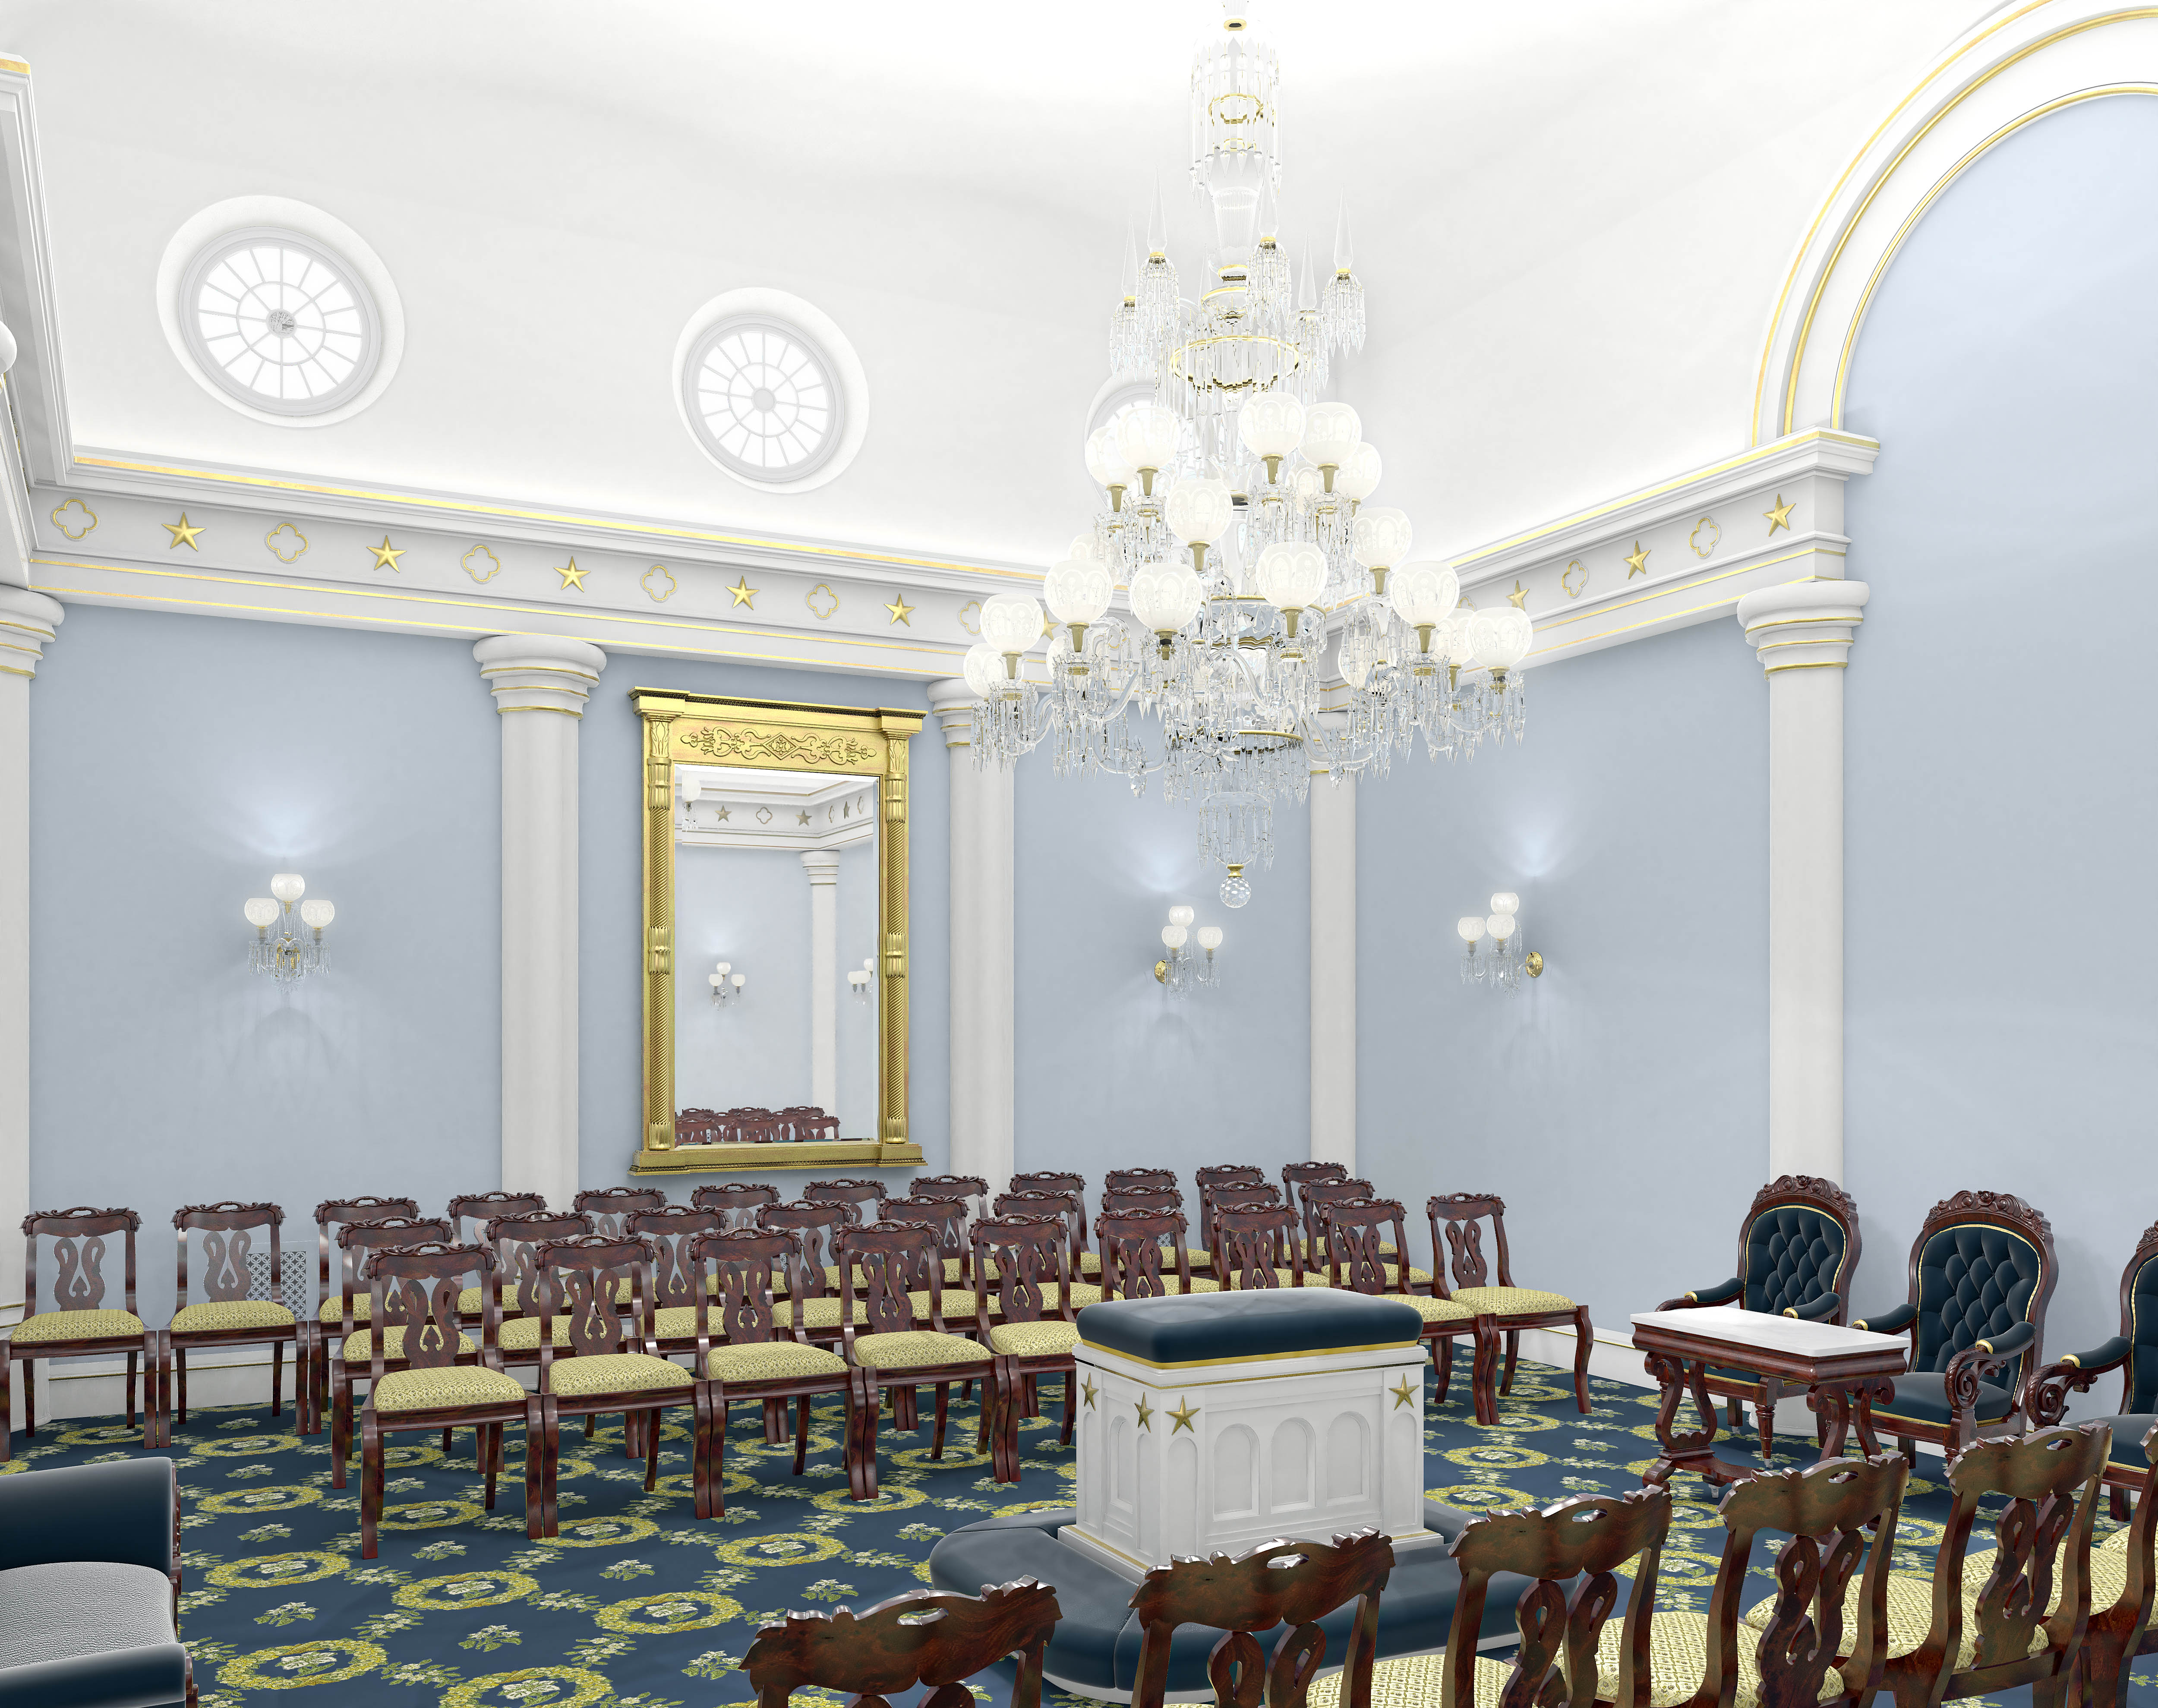 A rendering of a sealing room in the St. George Utah Temple. The temple will close Nov. 4 for extensive renovations.